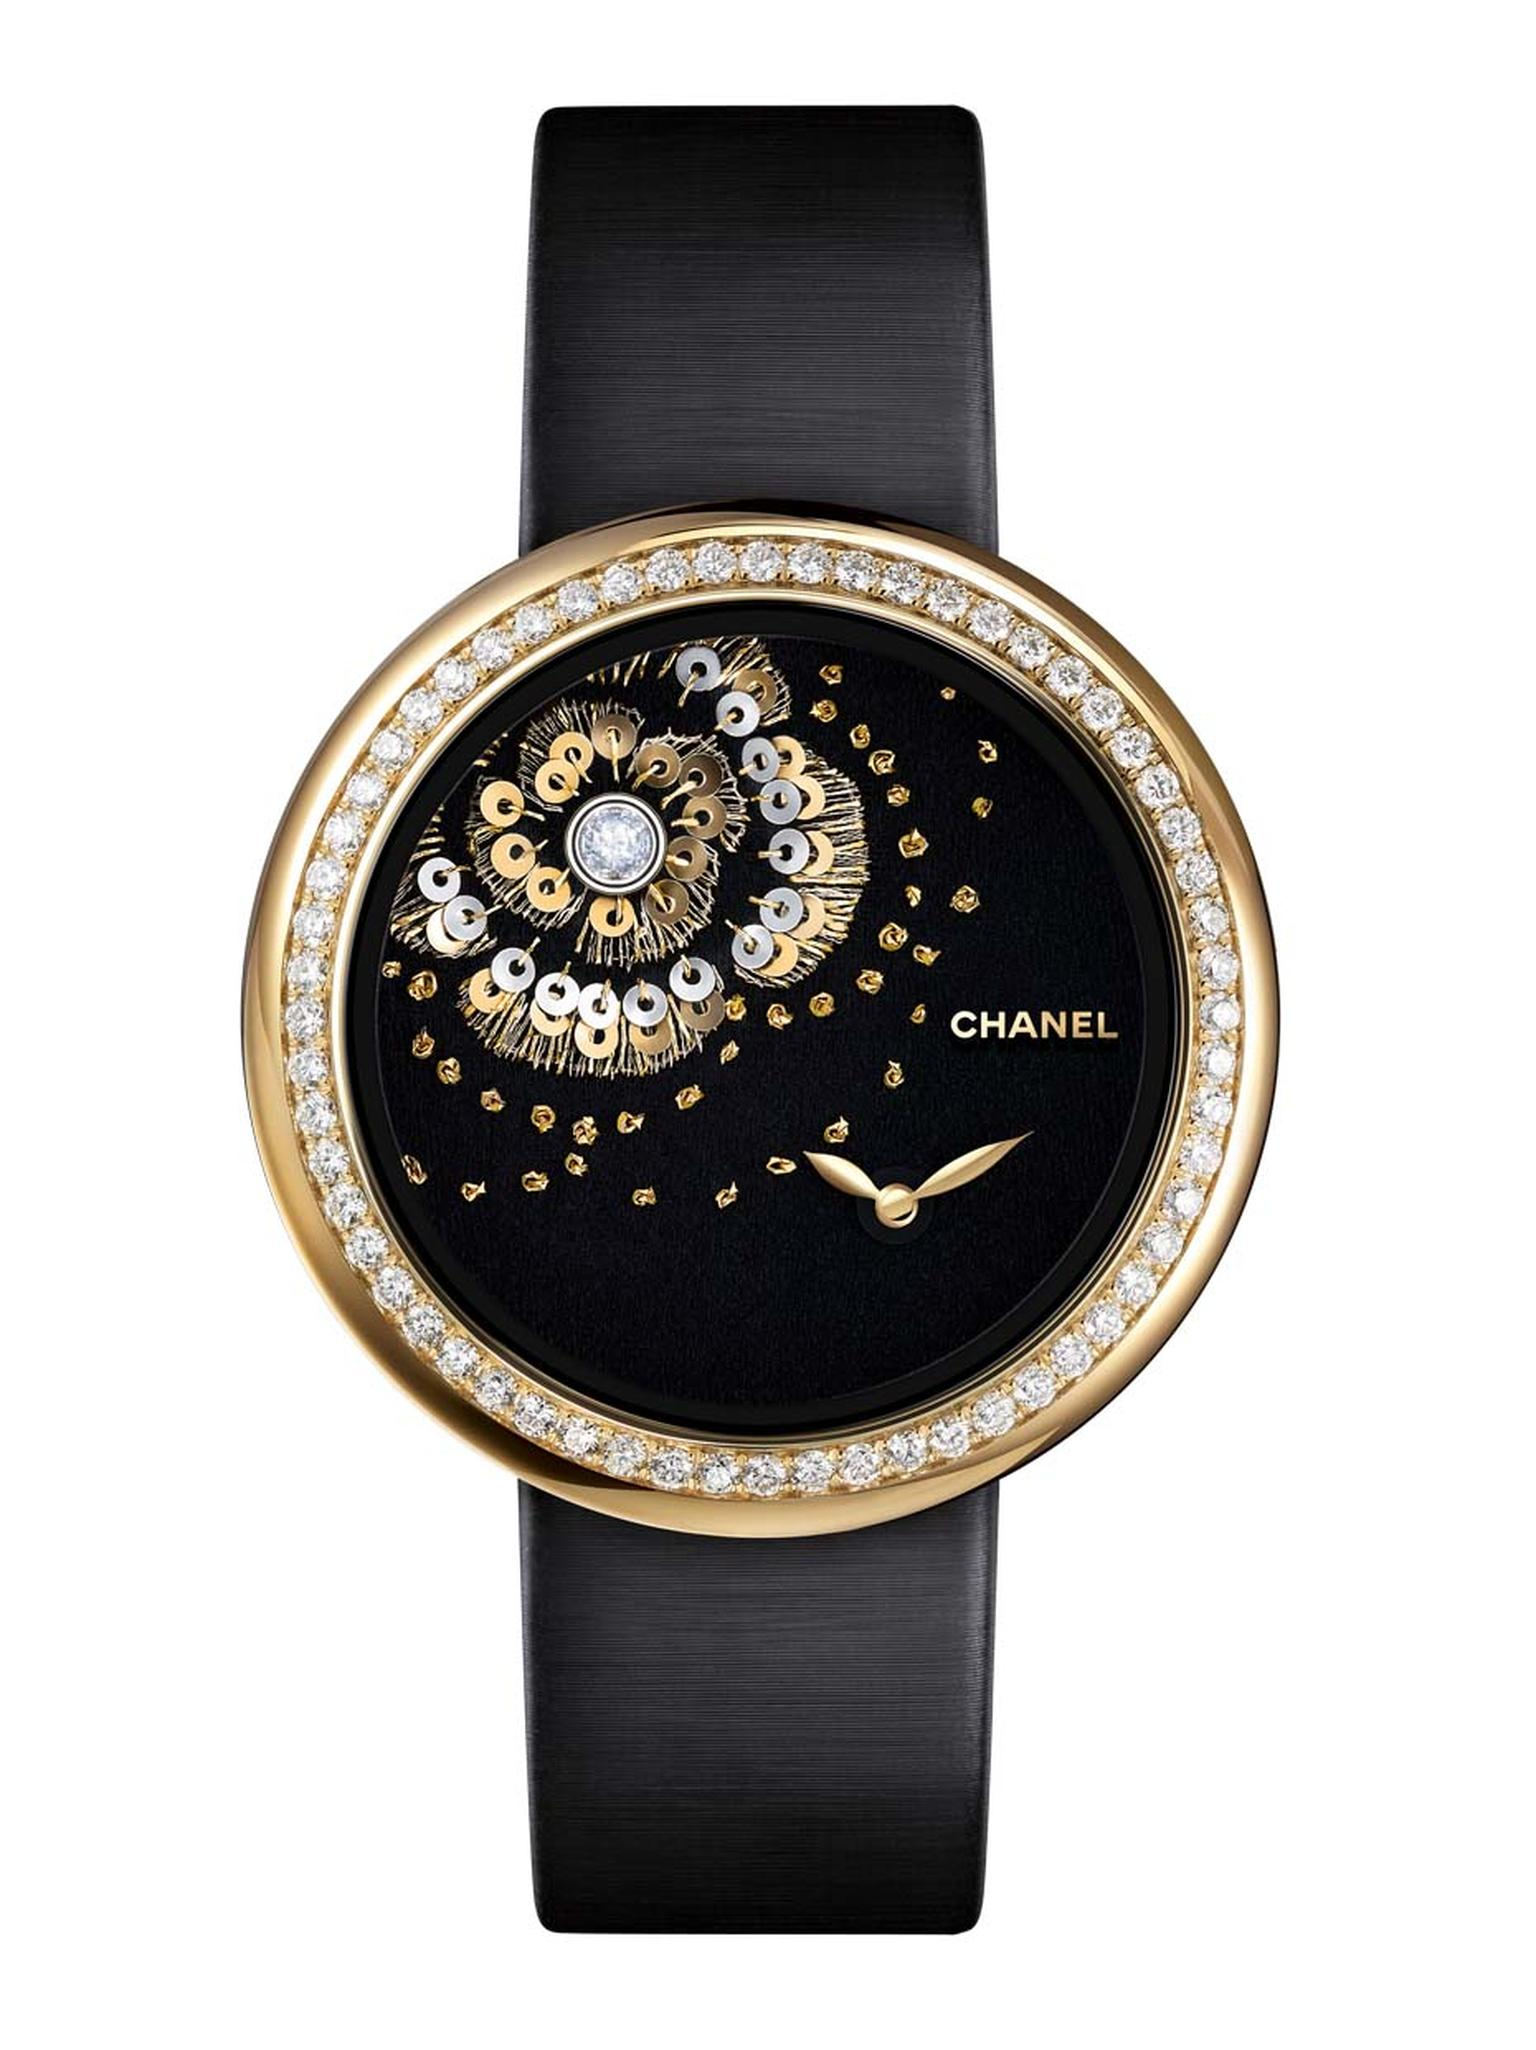 The new Chanel Mademoiselle Privé Camellia Brodé Lesage watch is hand embroidered with gold and green silk thread, white and yellow gold sequins and knotted camellia flowers, and set with a single rose-cut diamond on the dial